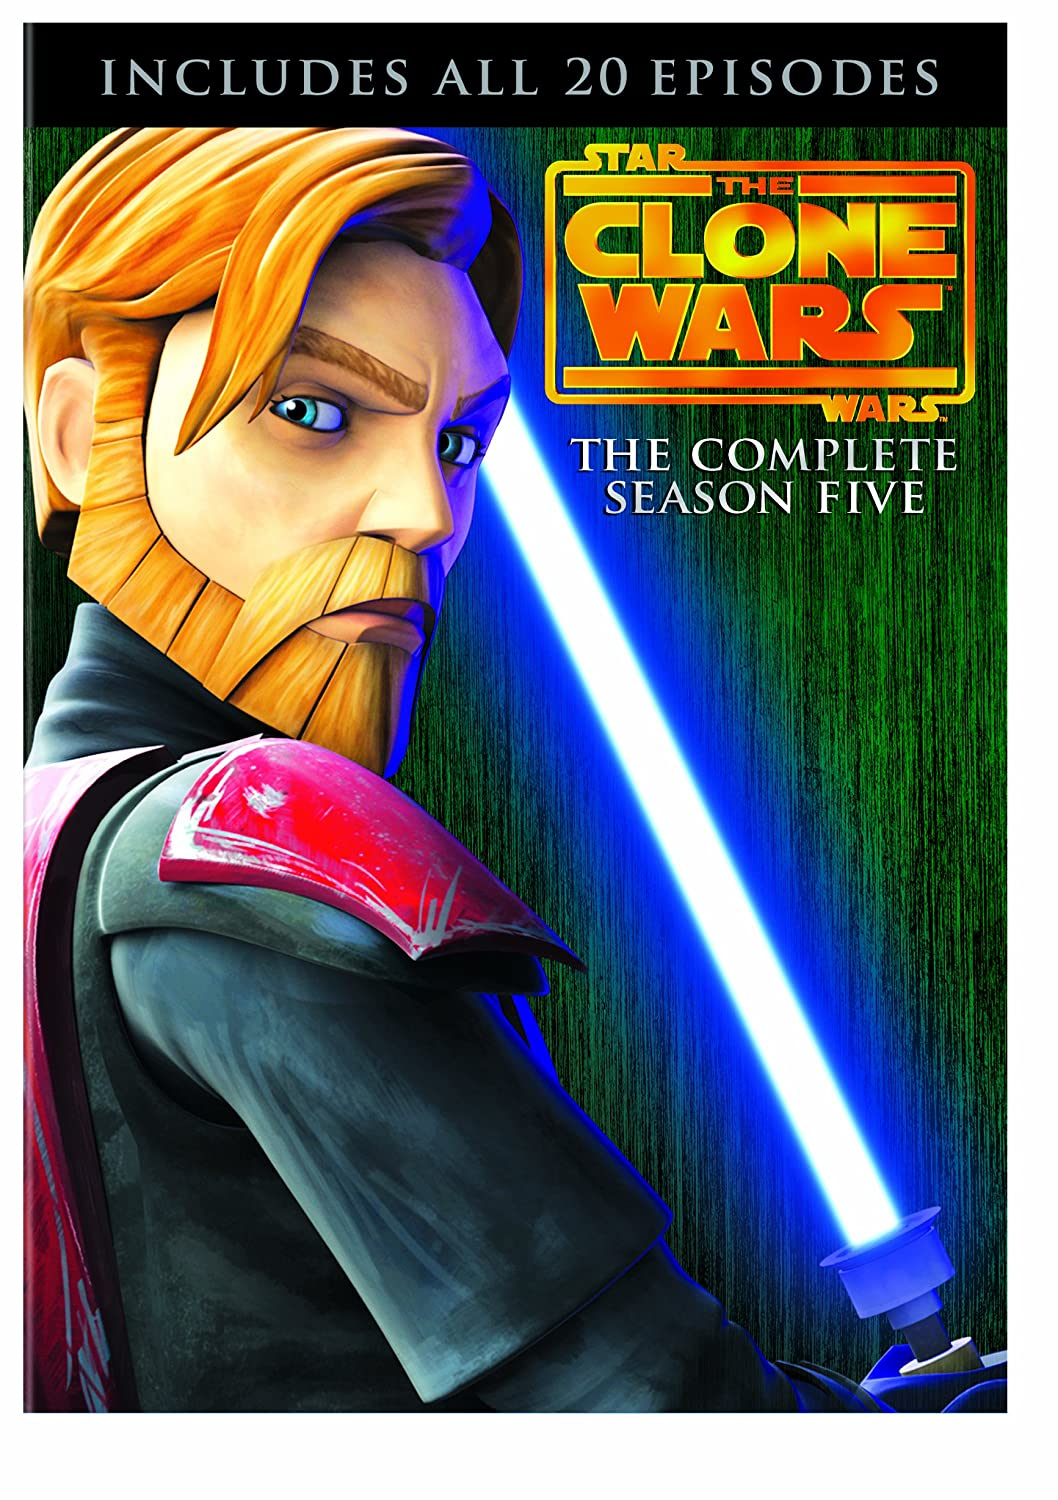 Star Wars The Clone Wars Dvd Cover Star Wars Clone Wars Season